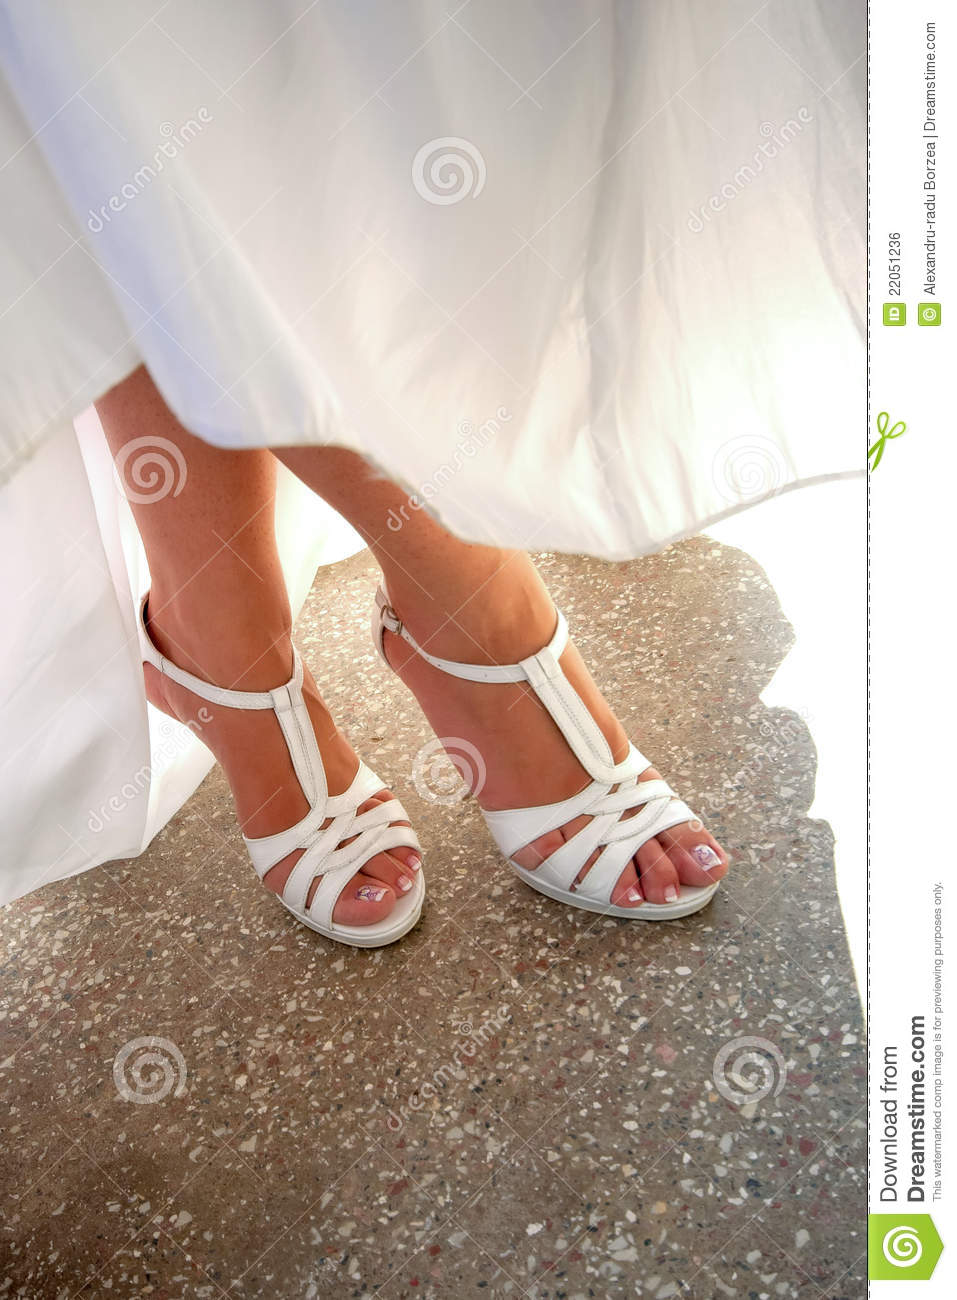 Bride legs and shoes stock photo. Image of wedding, foot - 22051236